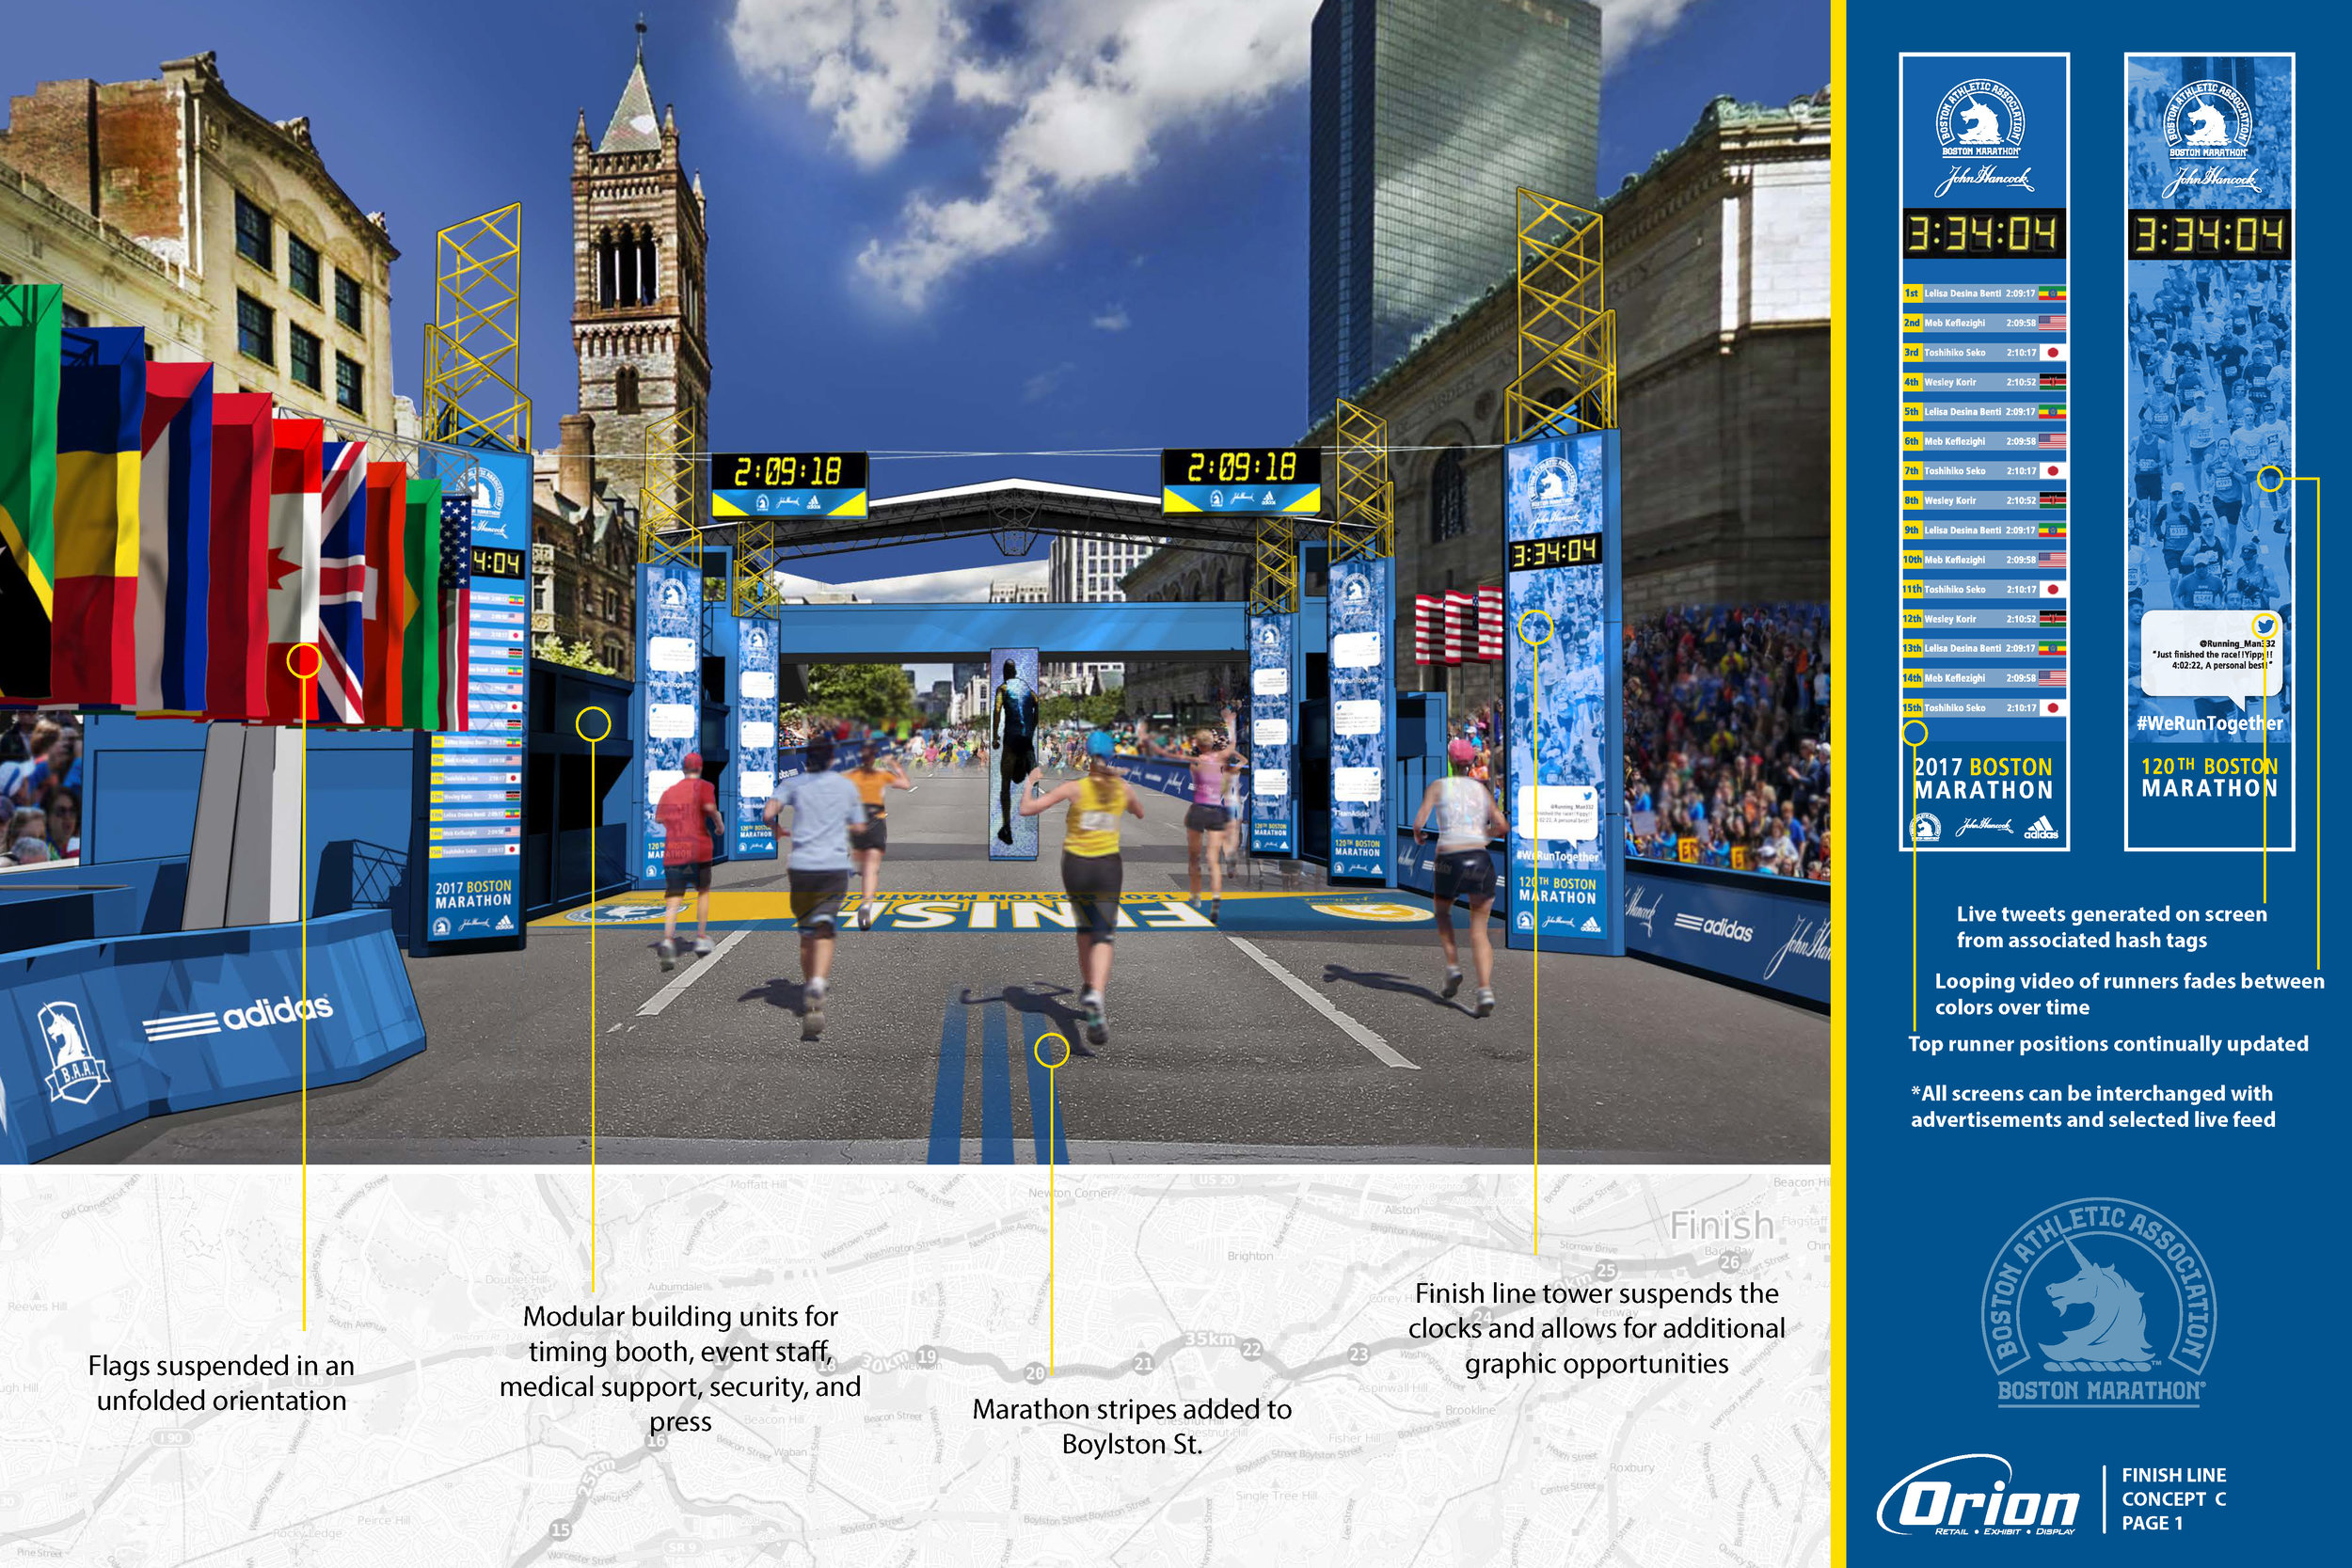 Pages from BostonMarathon%20Presentation_Concept%20C-LR_Page_1.jpg